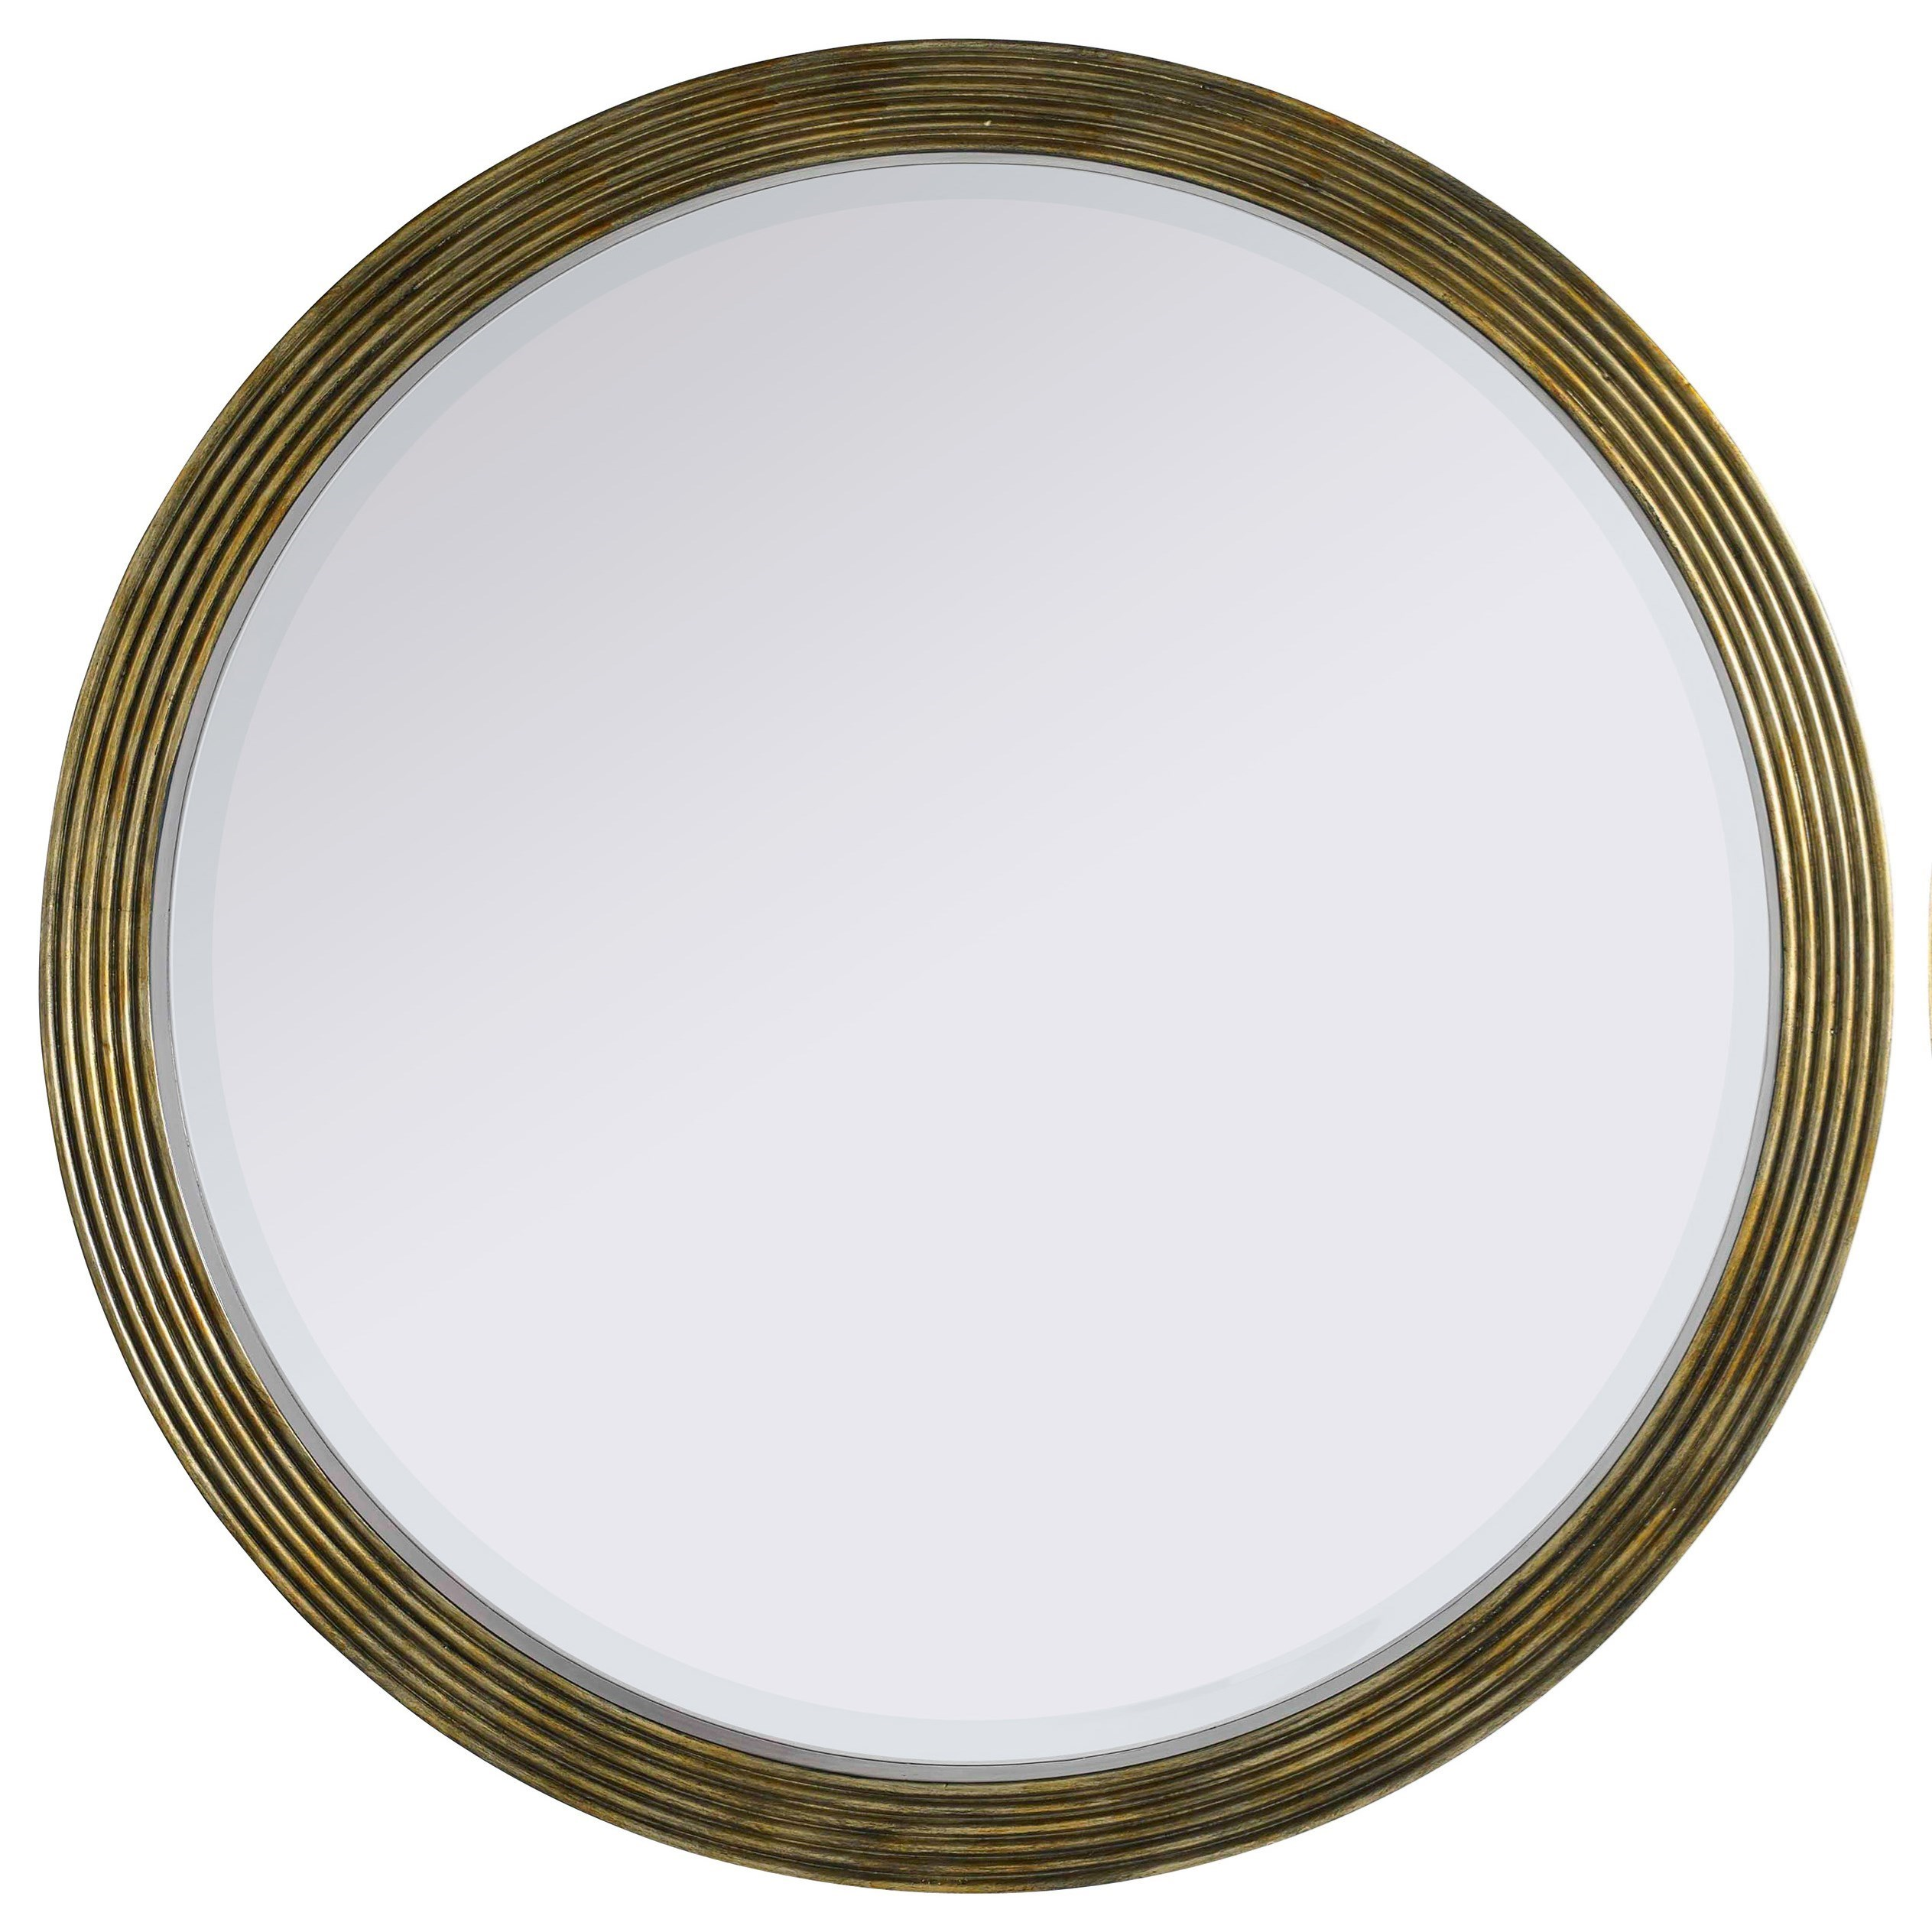 Hooker Furniture Mélange Presidio Mirror - Item Number: 638-50261